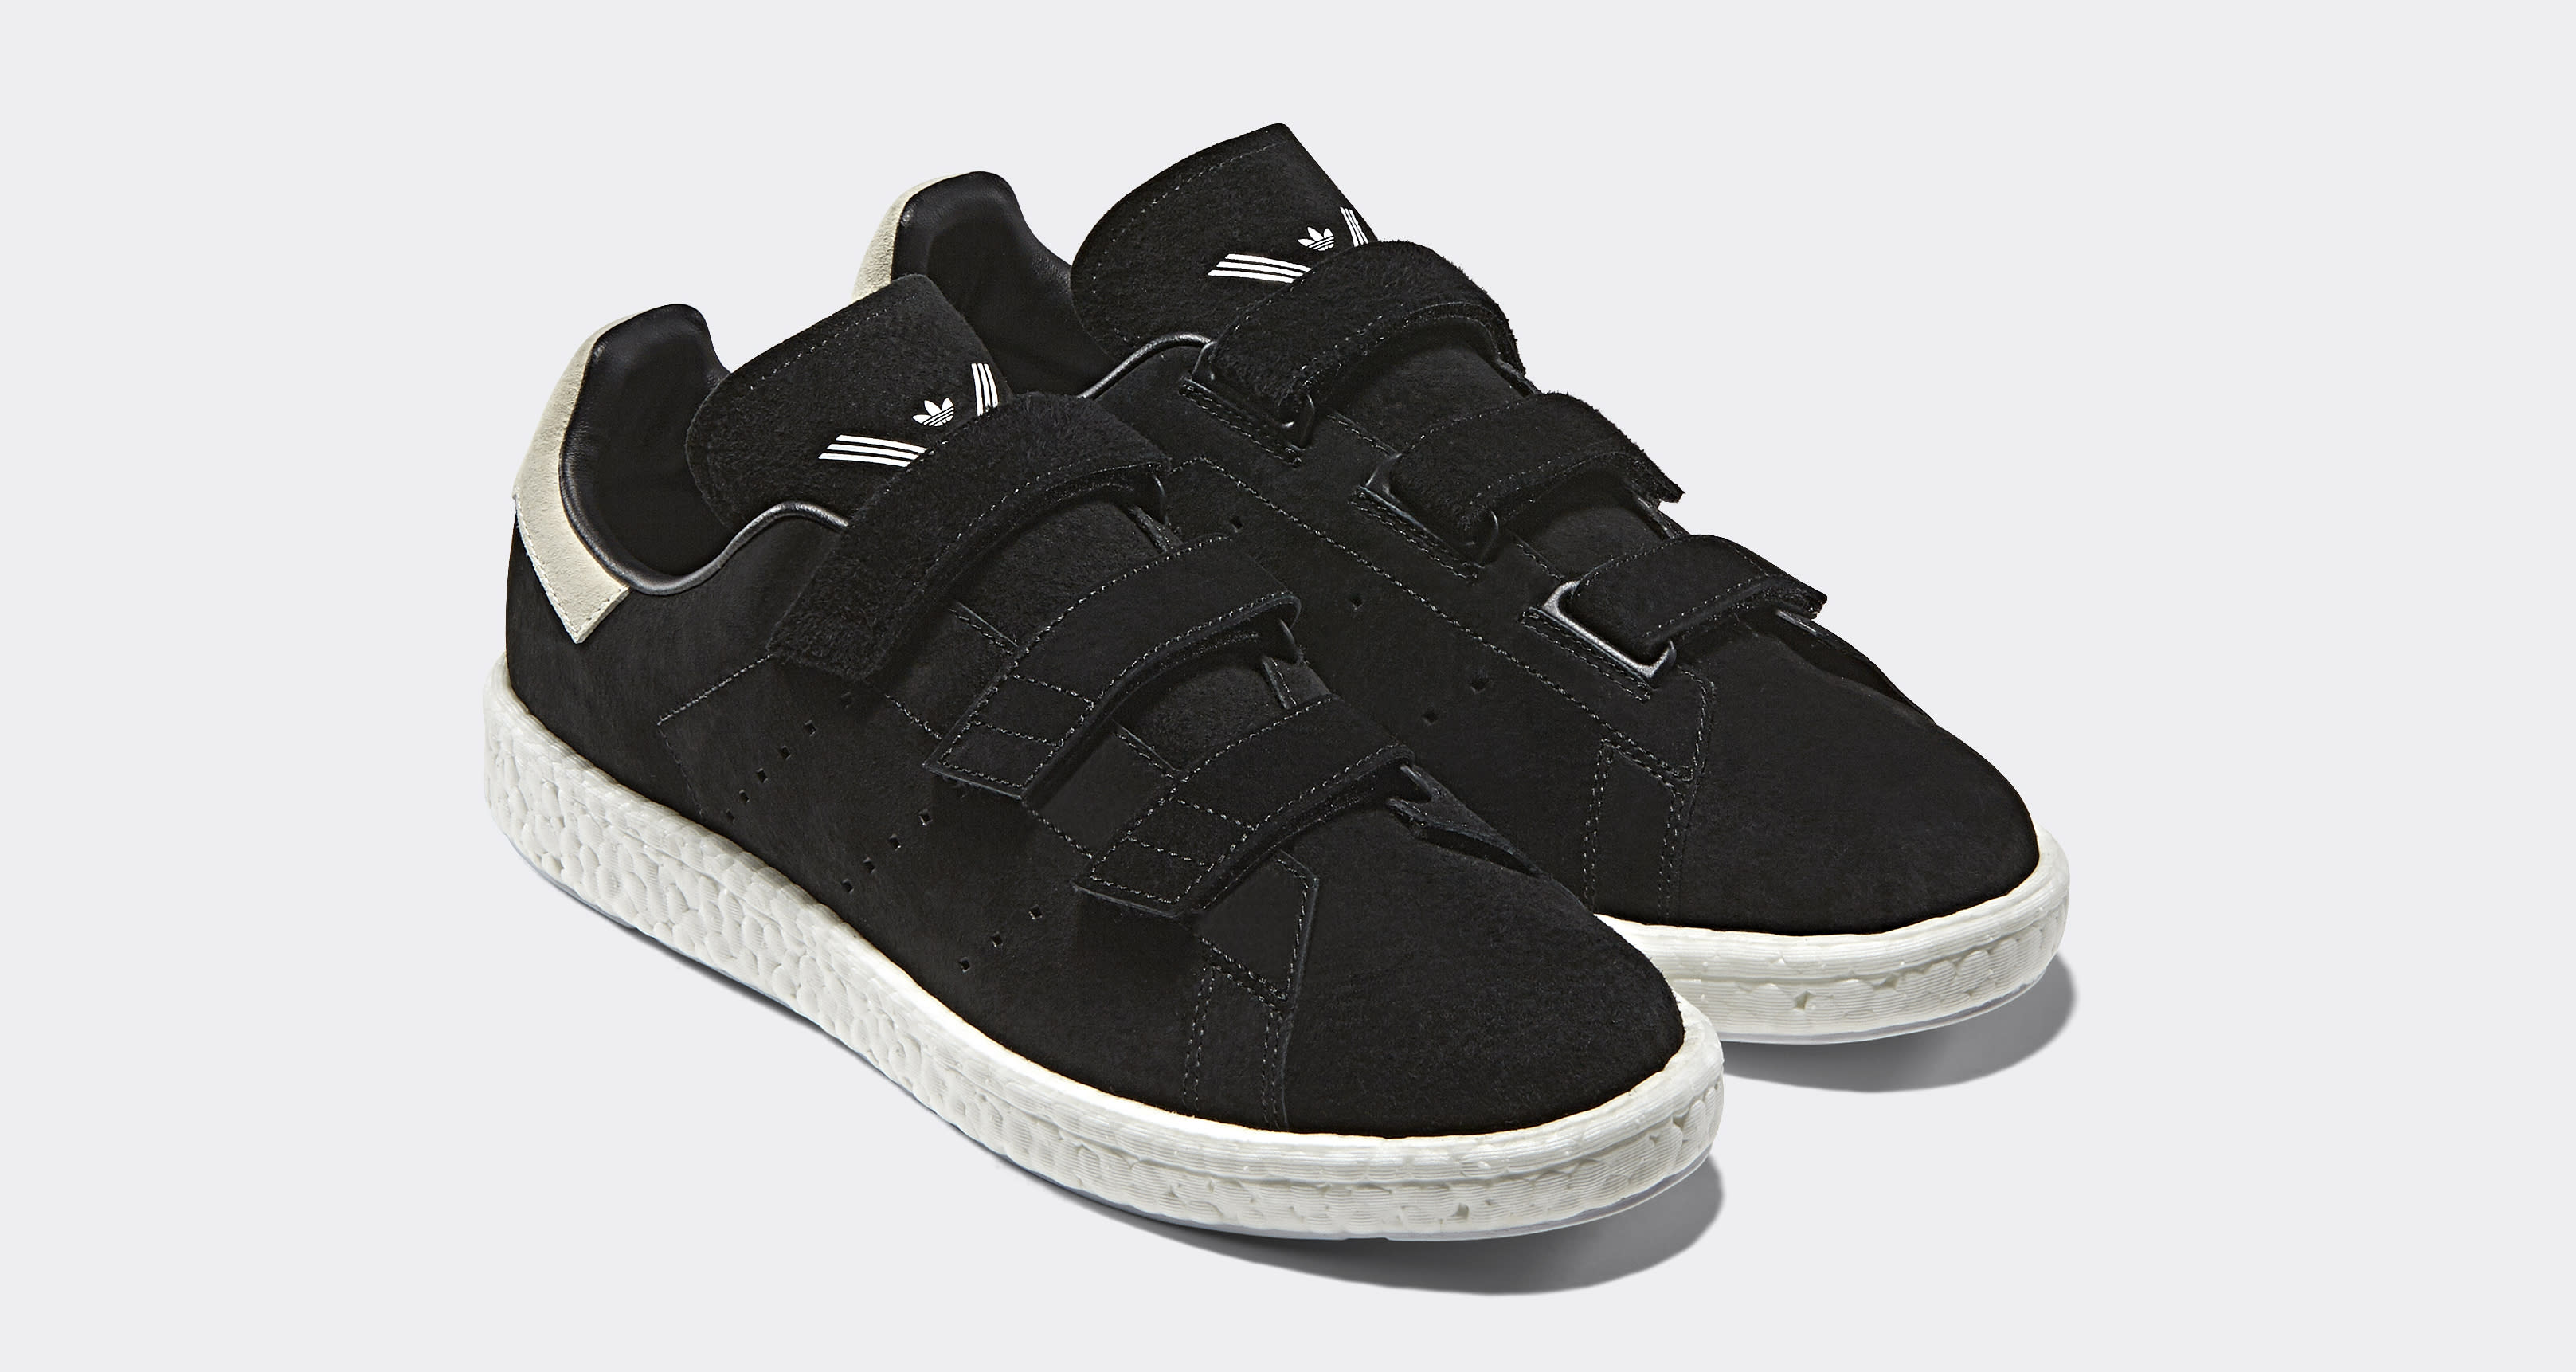 White Mountaineering x Adidas Pack